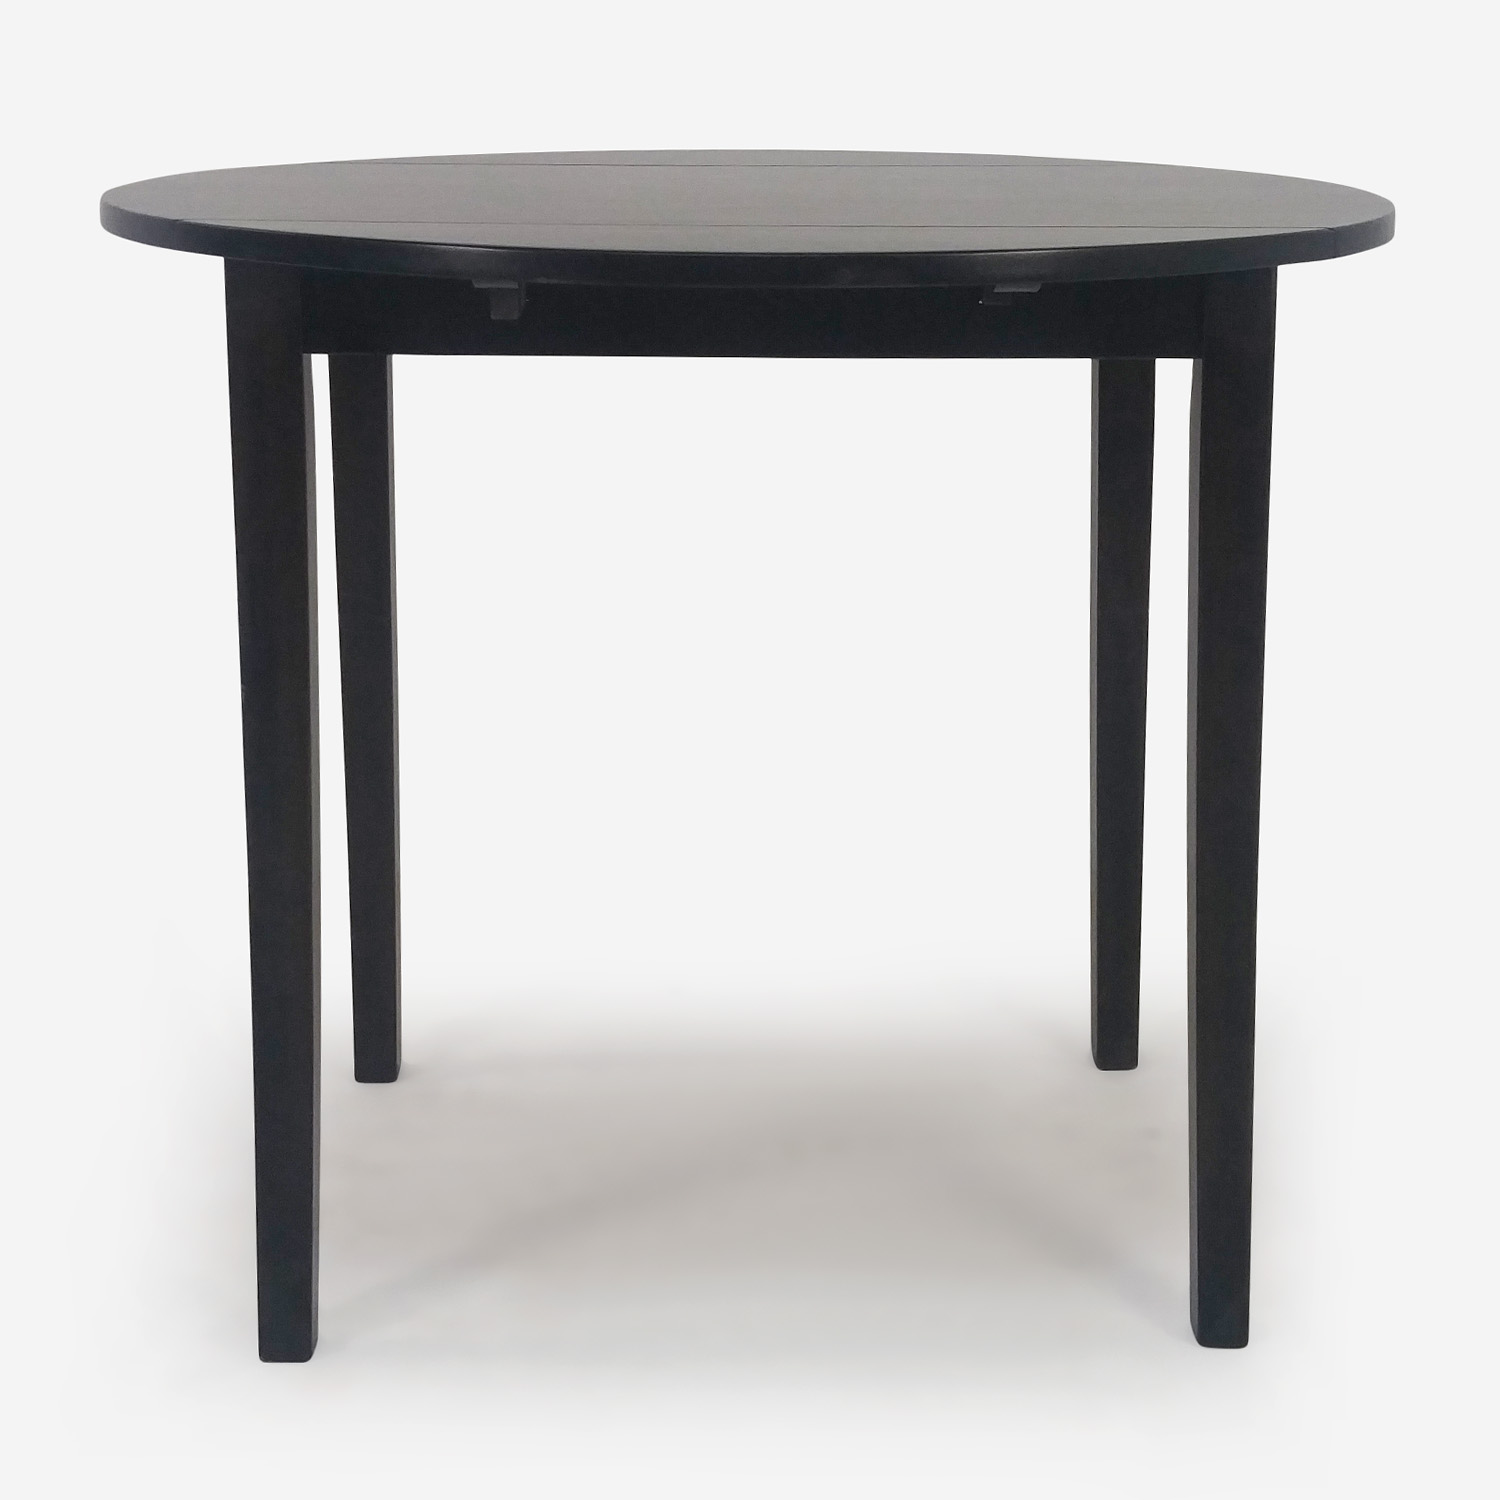 shop Espresso Table With Dropping Leaves online